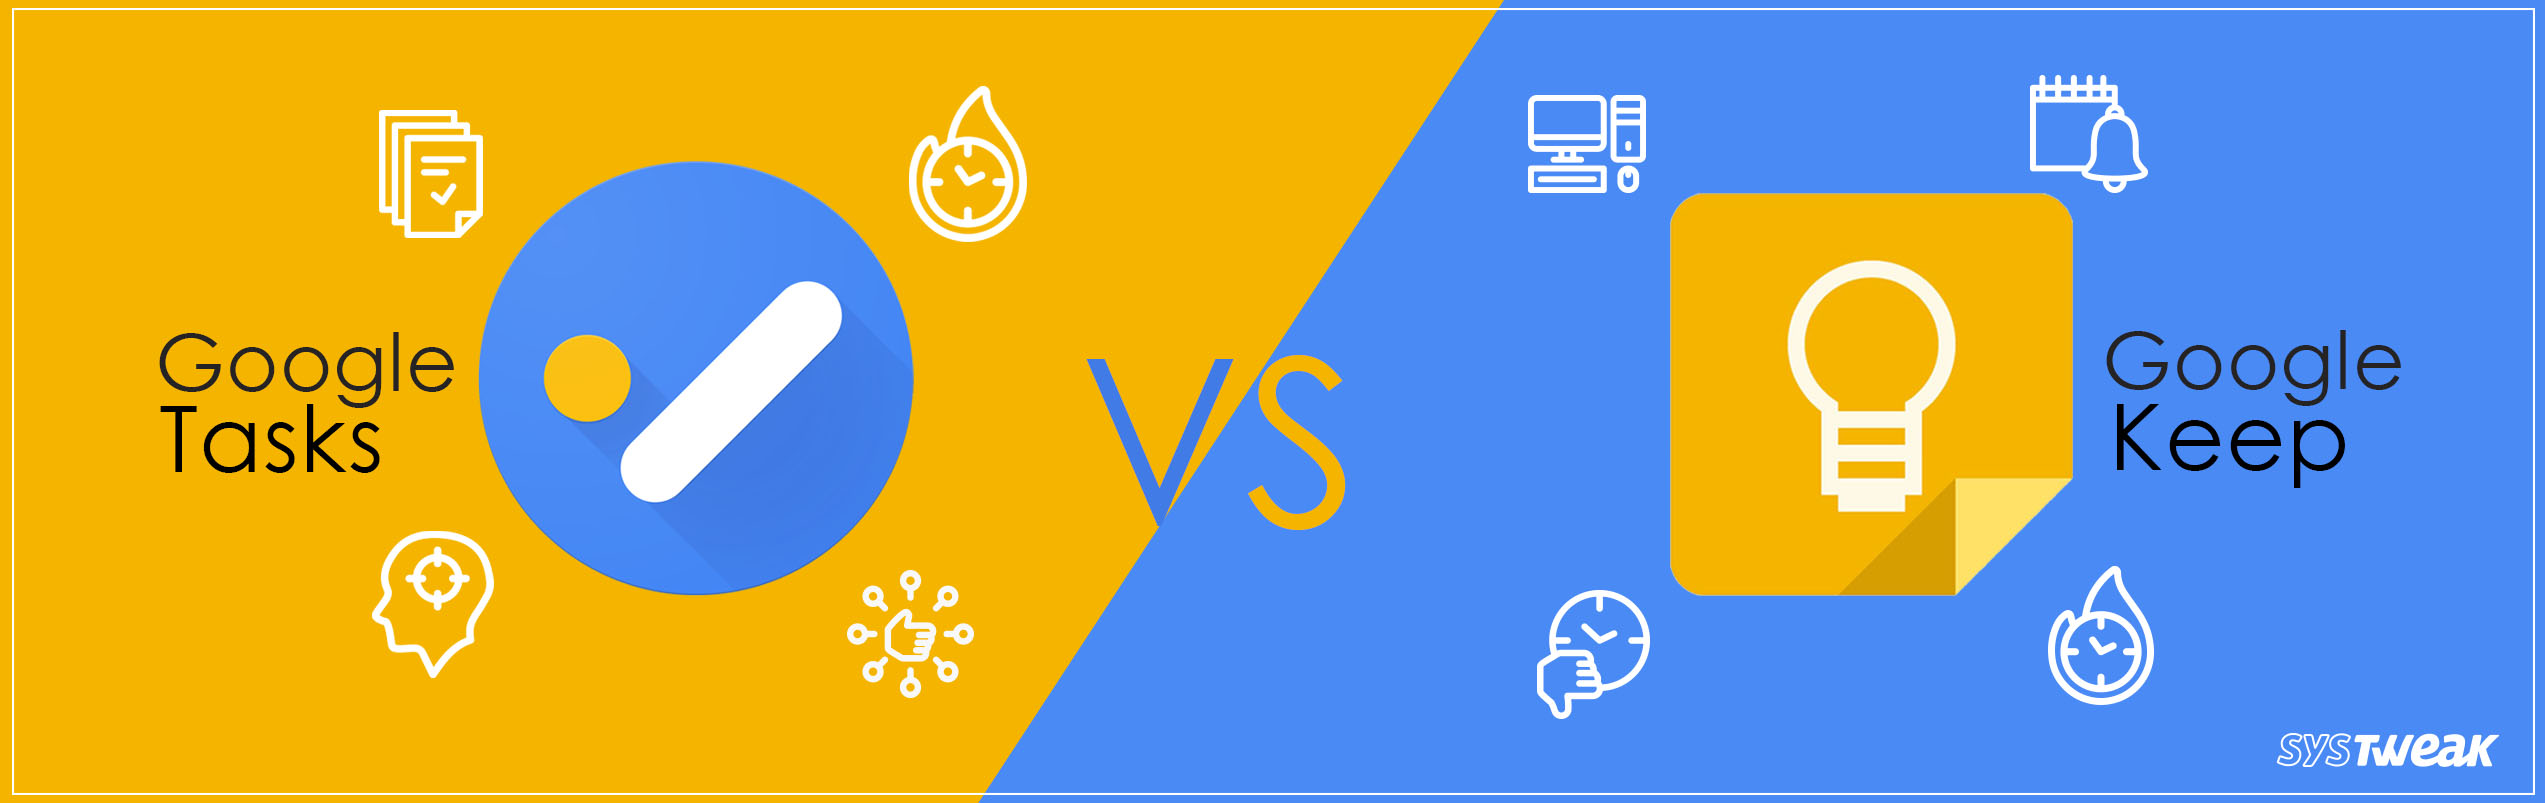 Google Tasks vs Google Keep